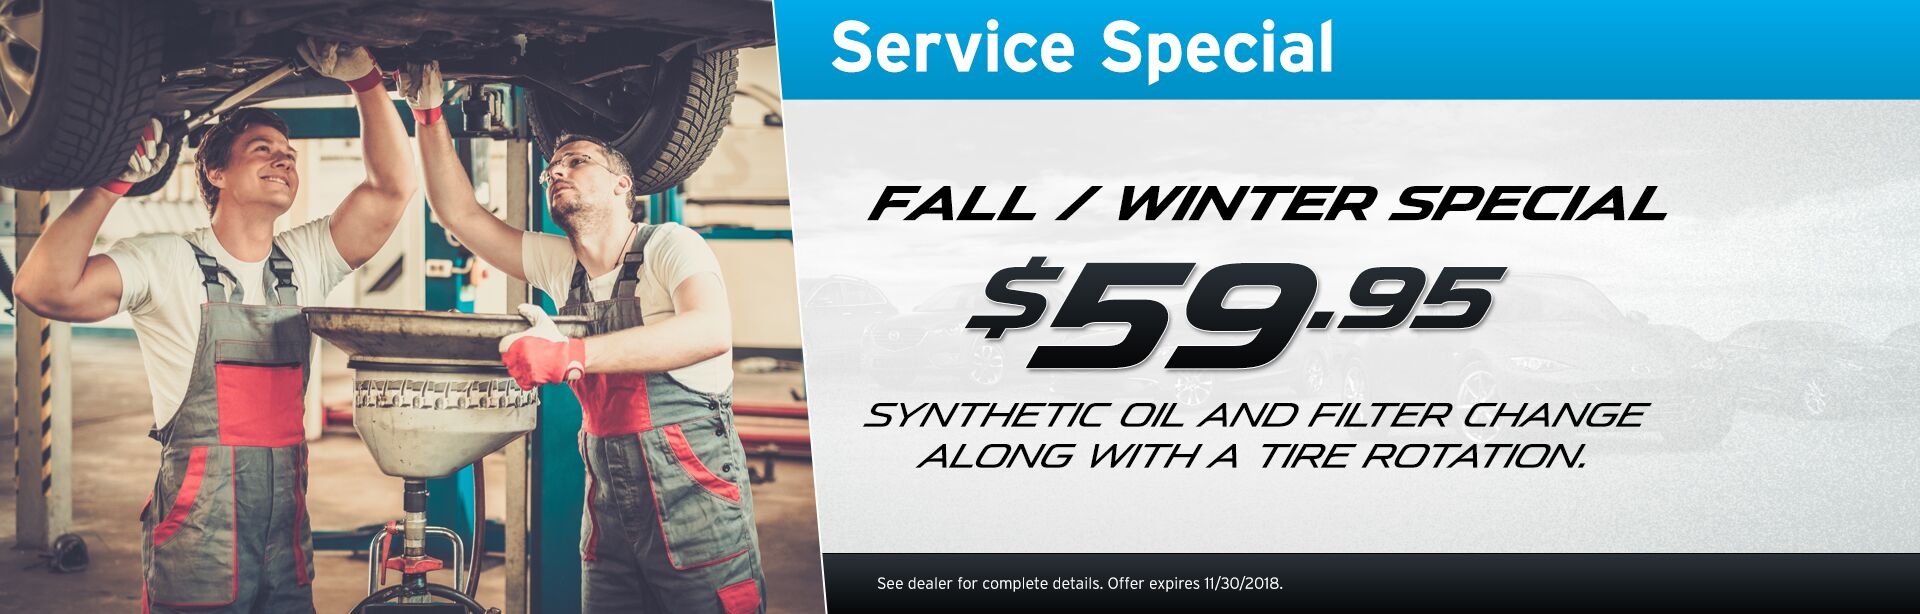 Fall/Winter Special